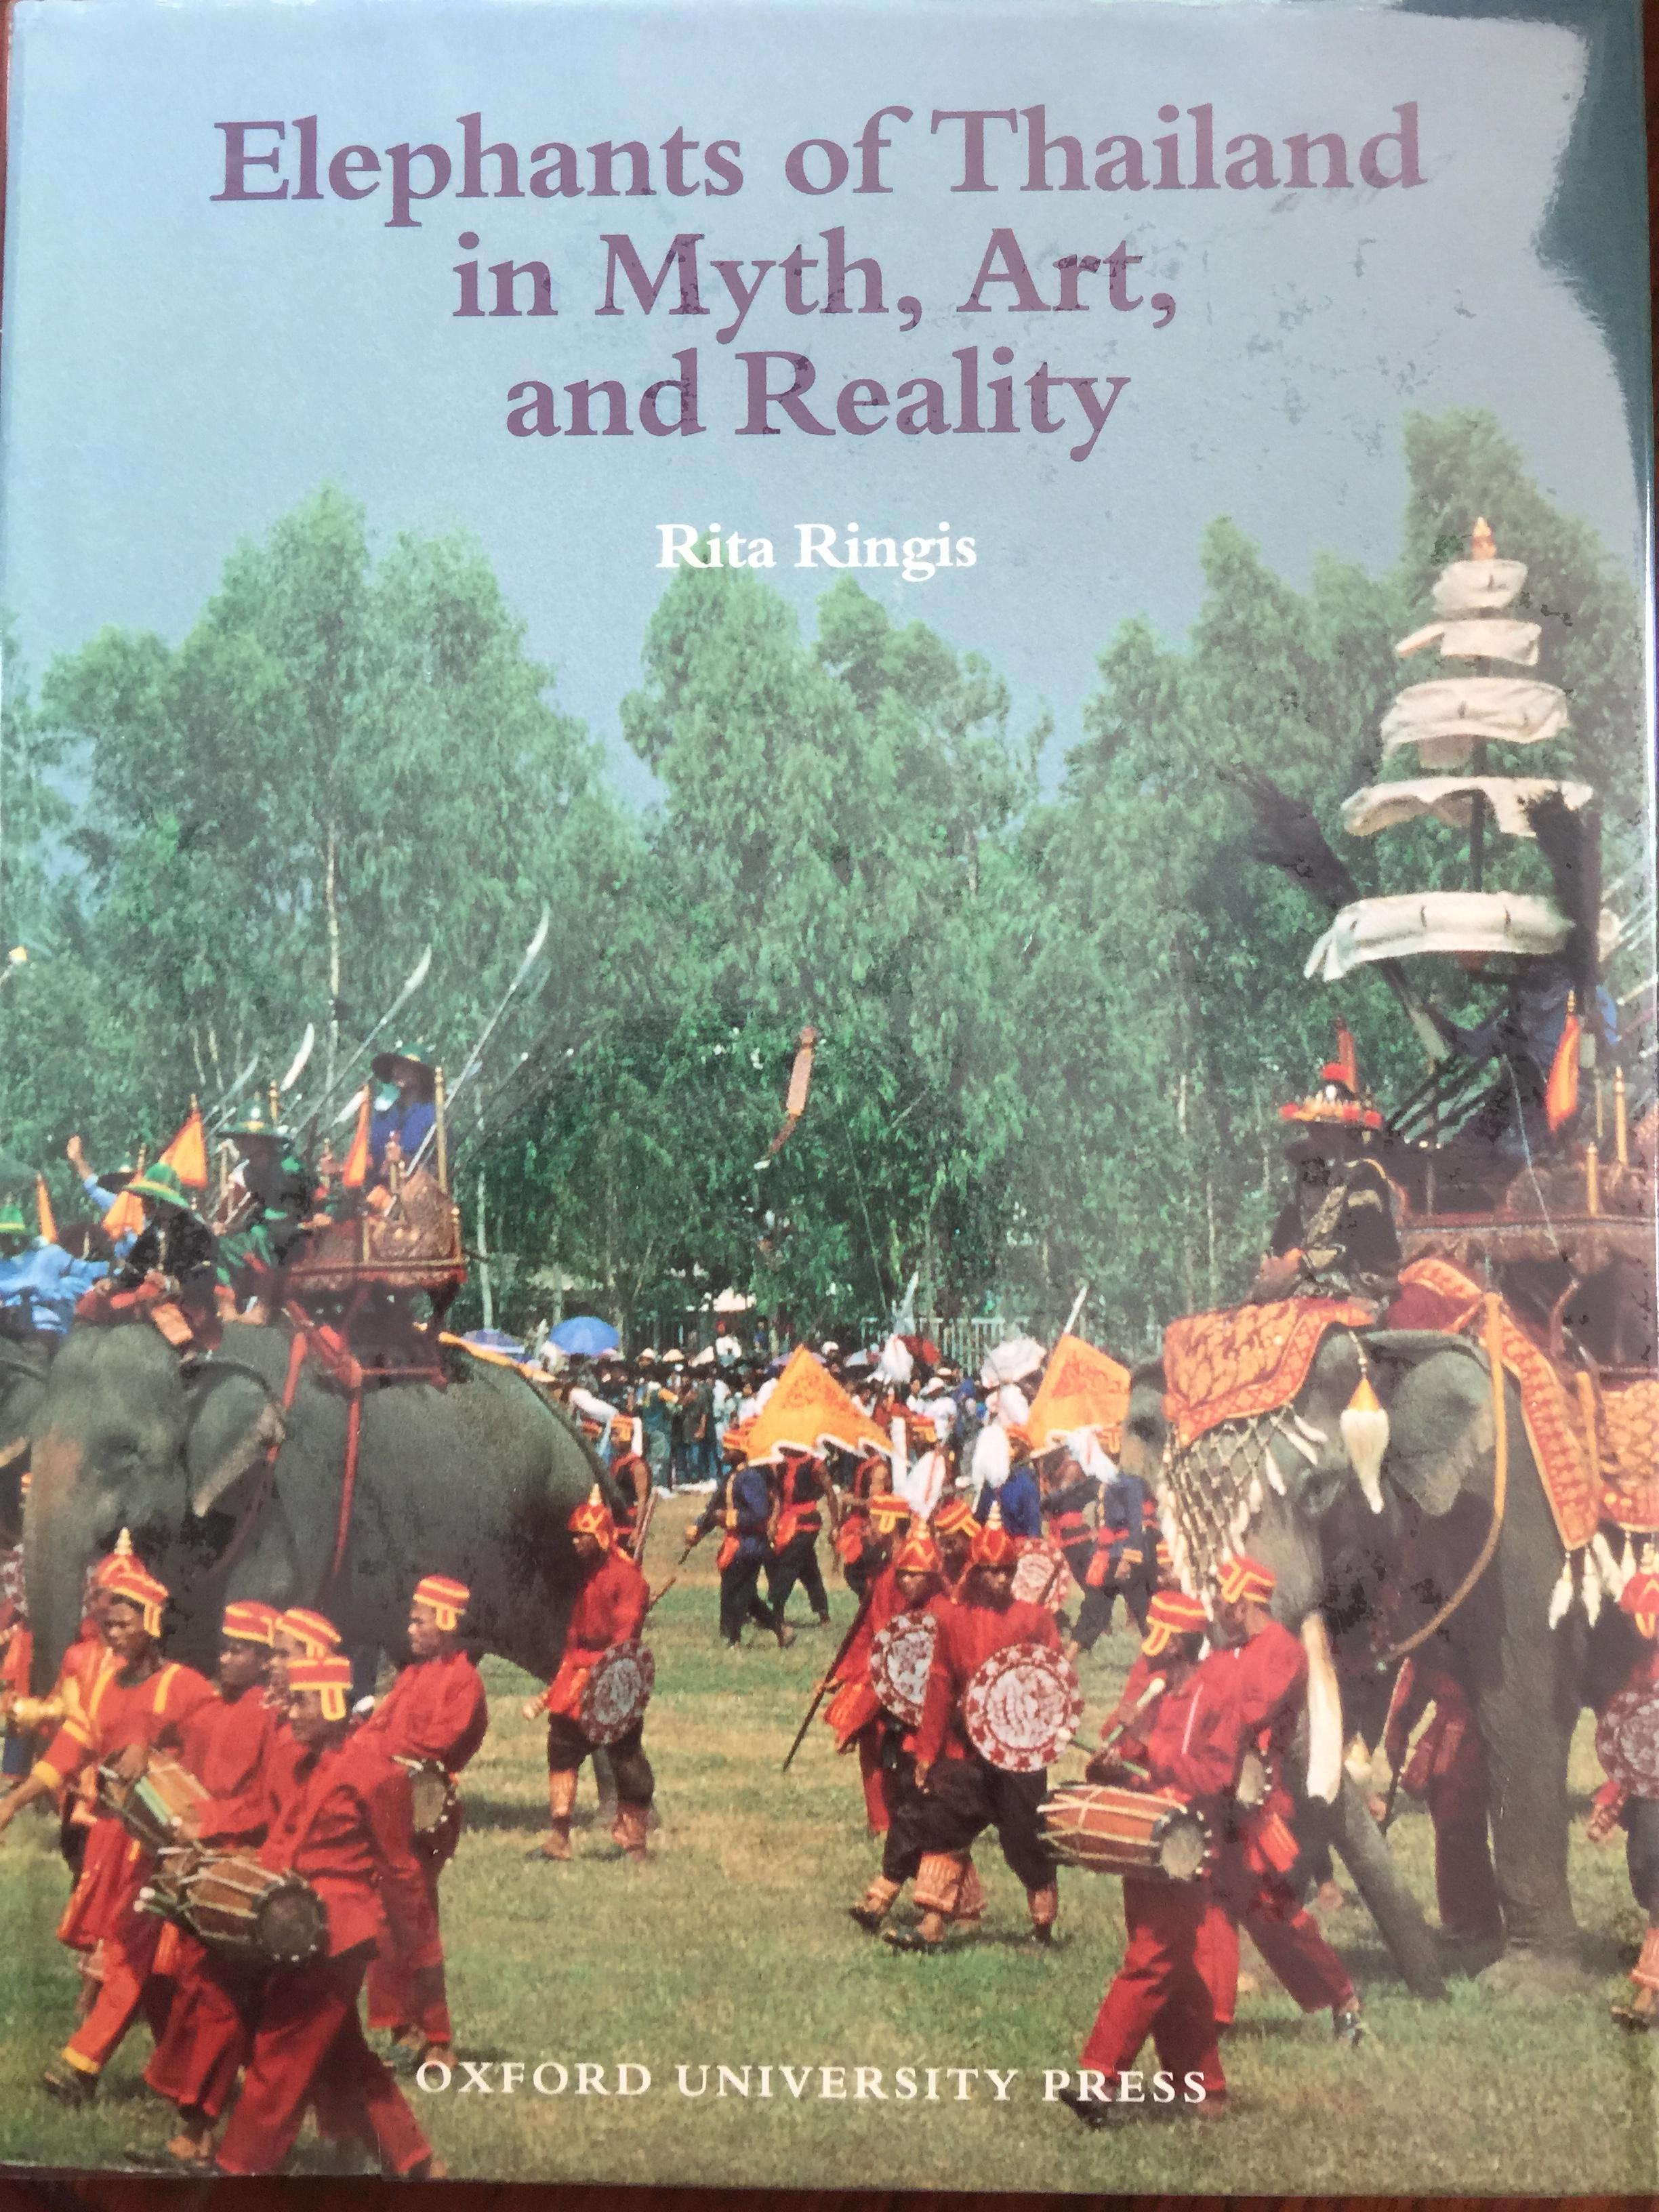 Elephants of Thailand in Myth ,Art , and Reality. ผู้เขียน Rita Ringis. Oxford University Press